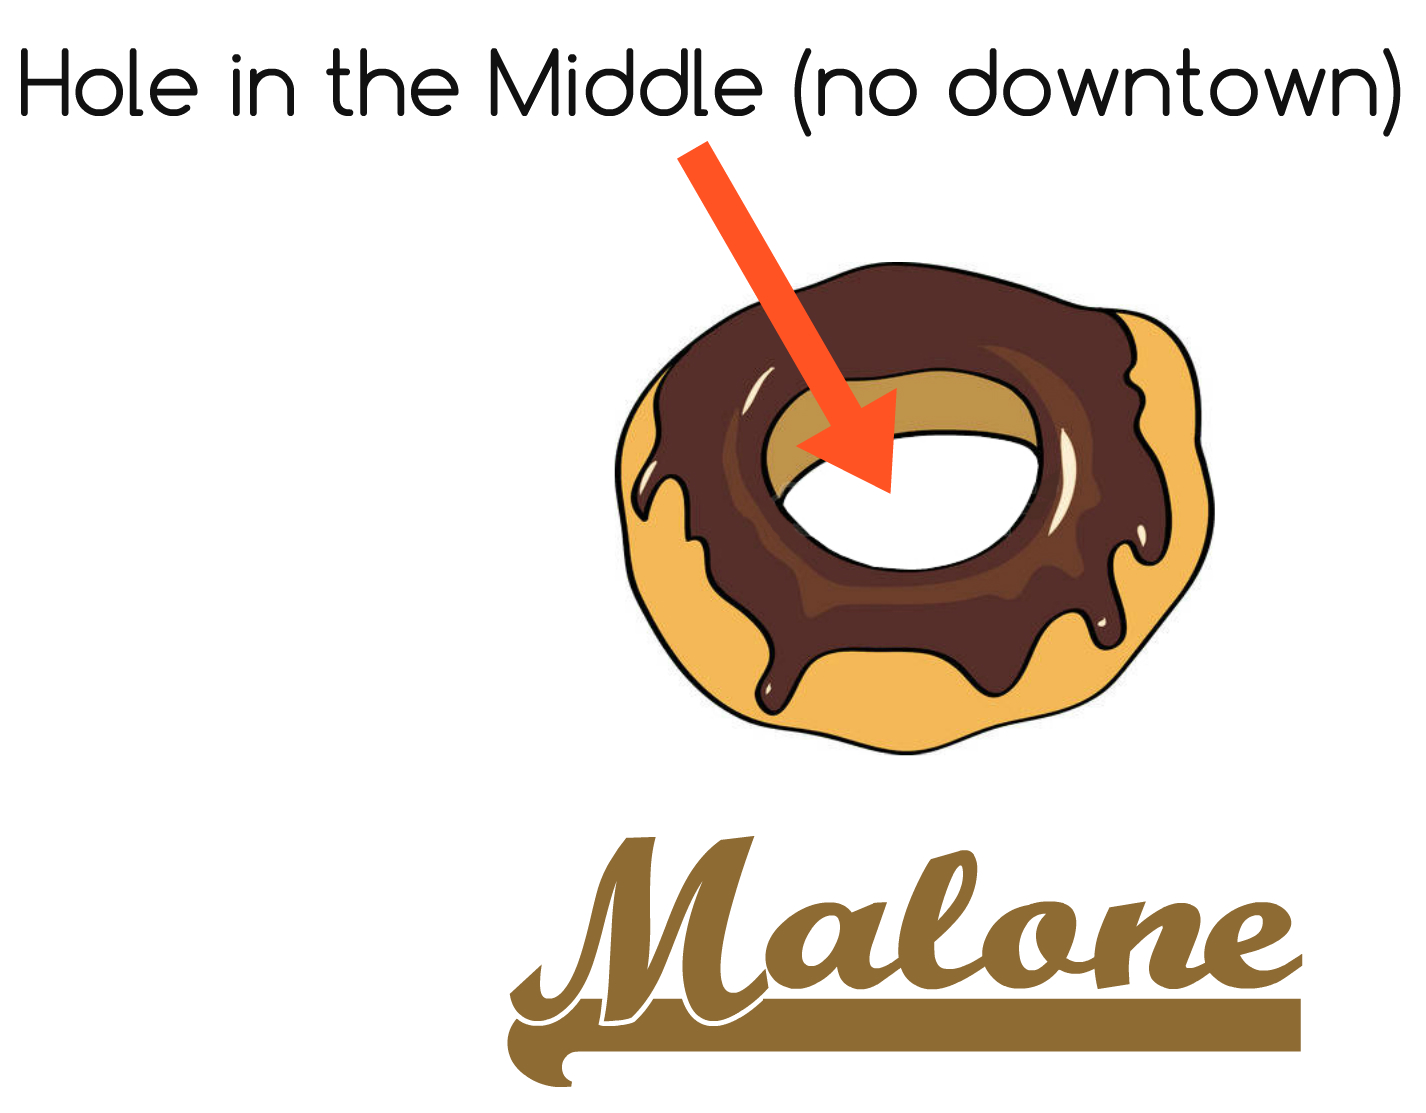 For 2 Decades Ive Been Puzzling Over The Donut Hole We Charitably Call Historic Downtown Cmon Folks It What Is A